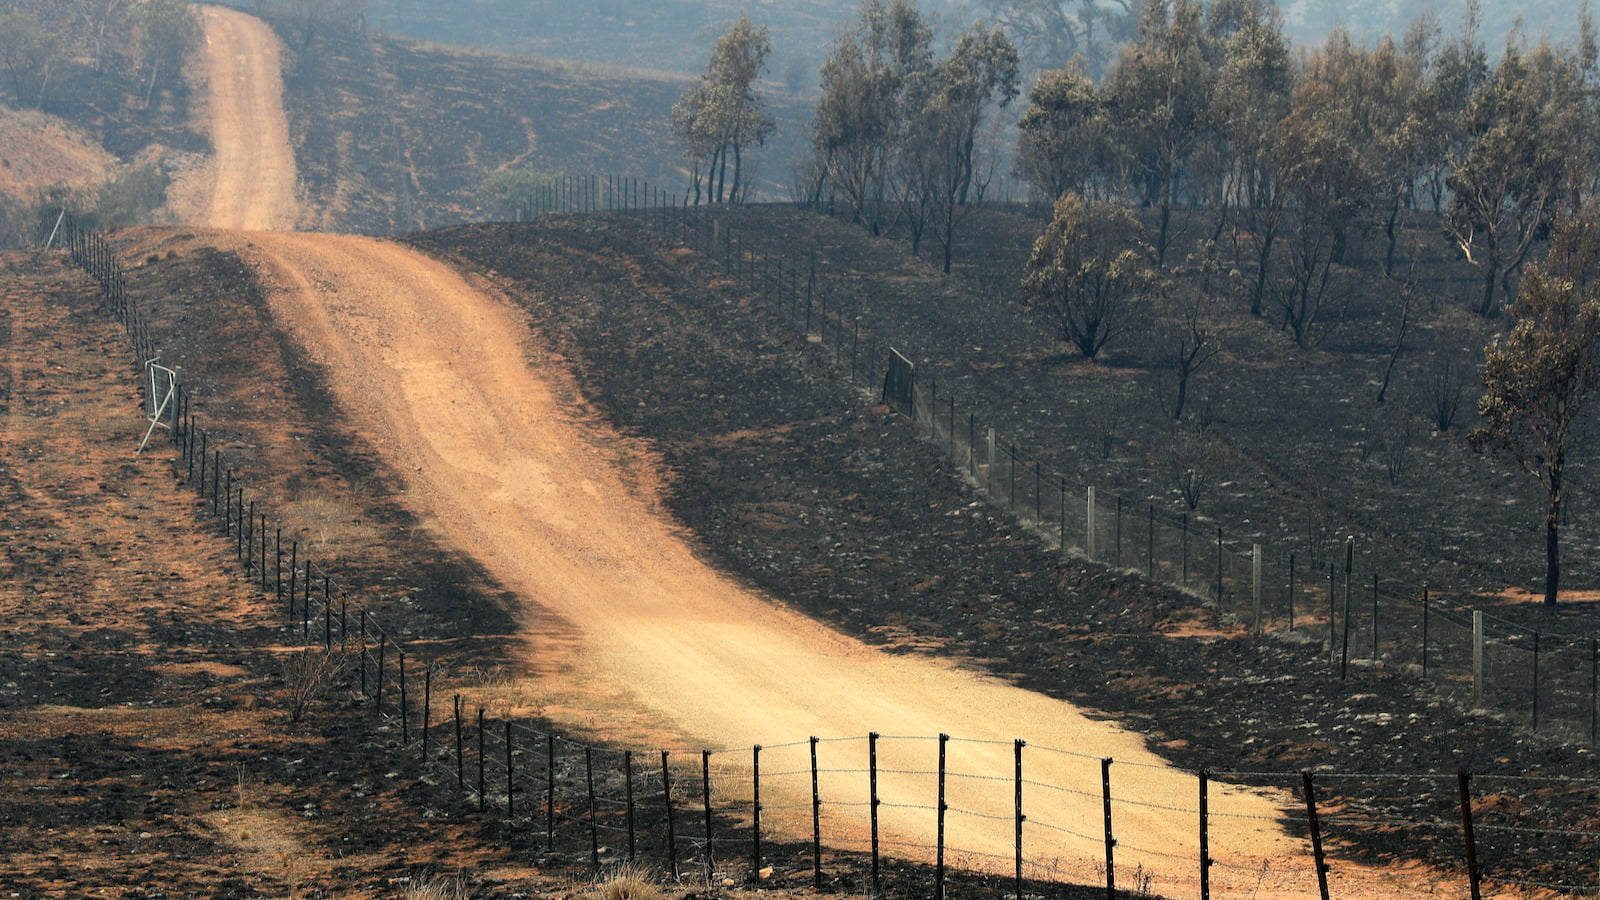 After The Fires, Australian Wineries Assess The Damage photo